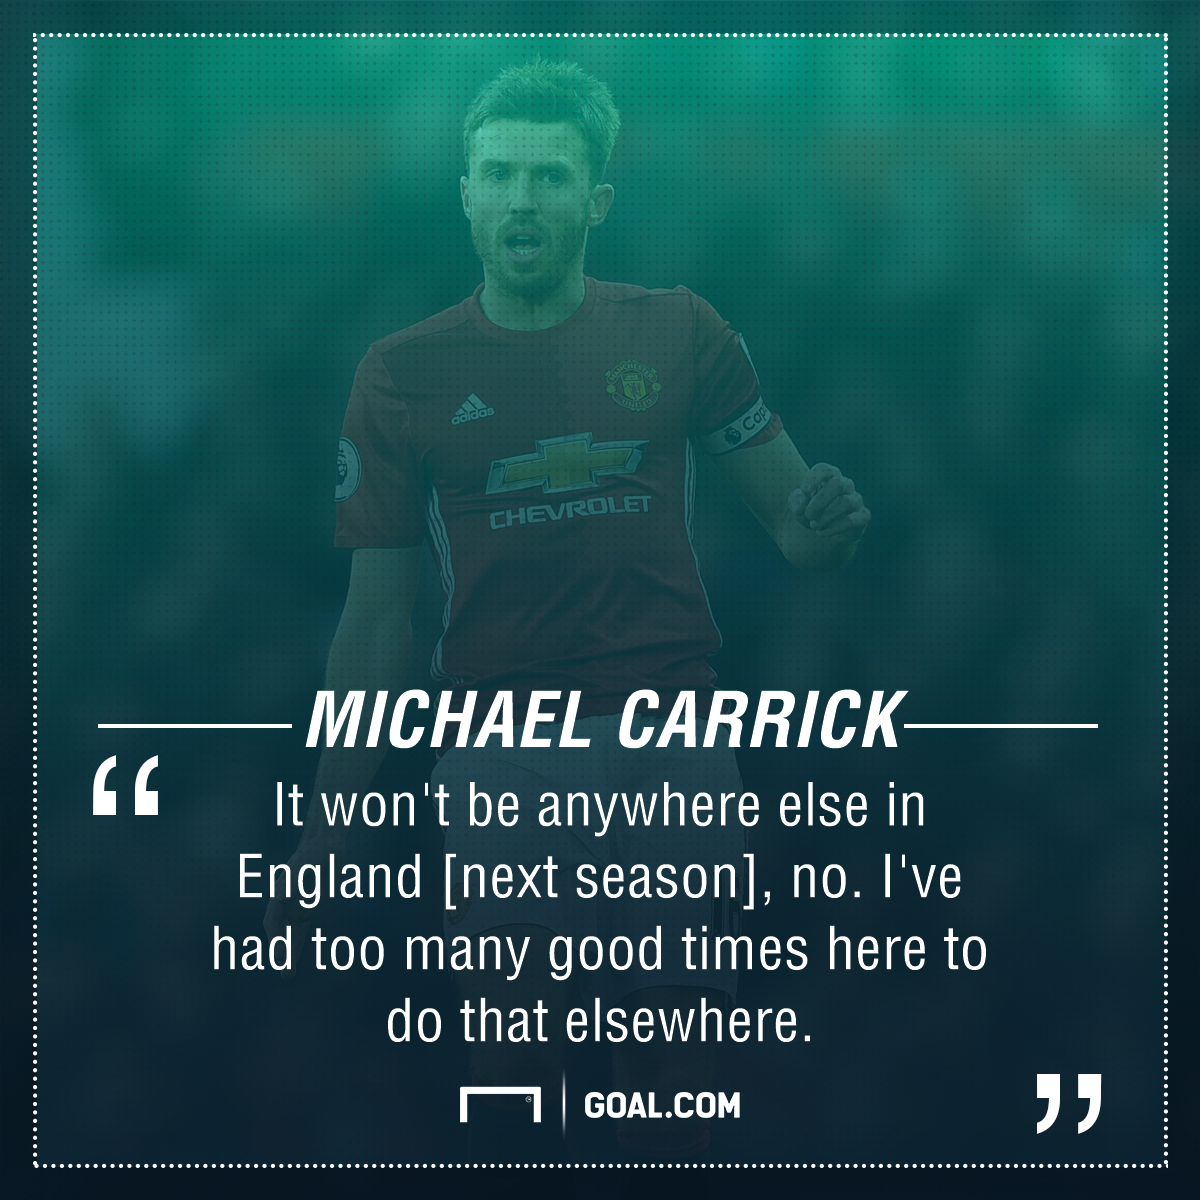 Michael Carrick Manchester United future